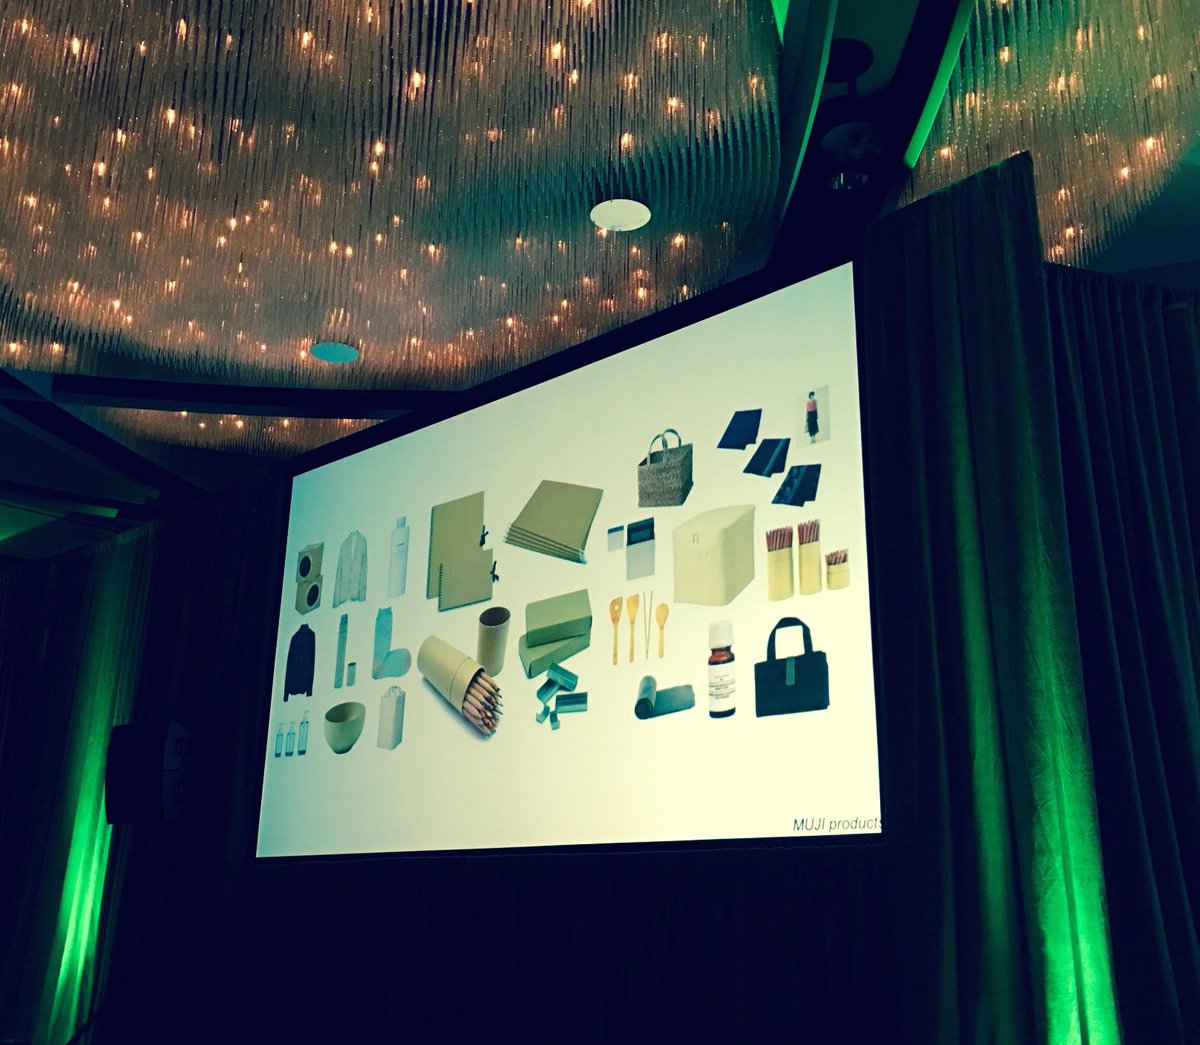 Well-designed products are manifestations of mindfulness & help us grow into our better selves @ireneau #UXWeek16 https://t.co/Fs3tDM2w8n